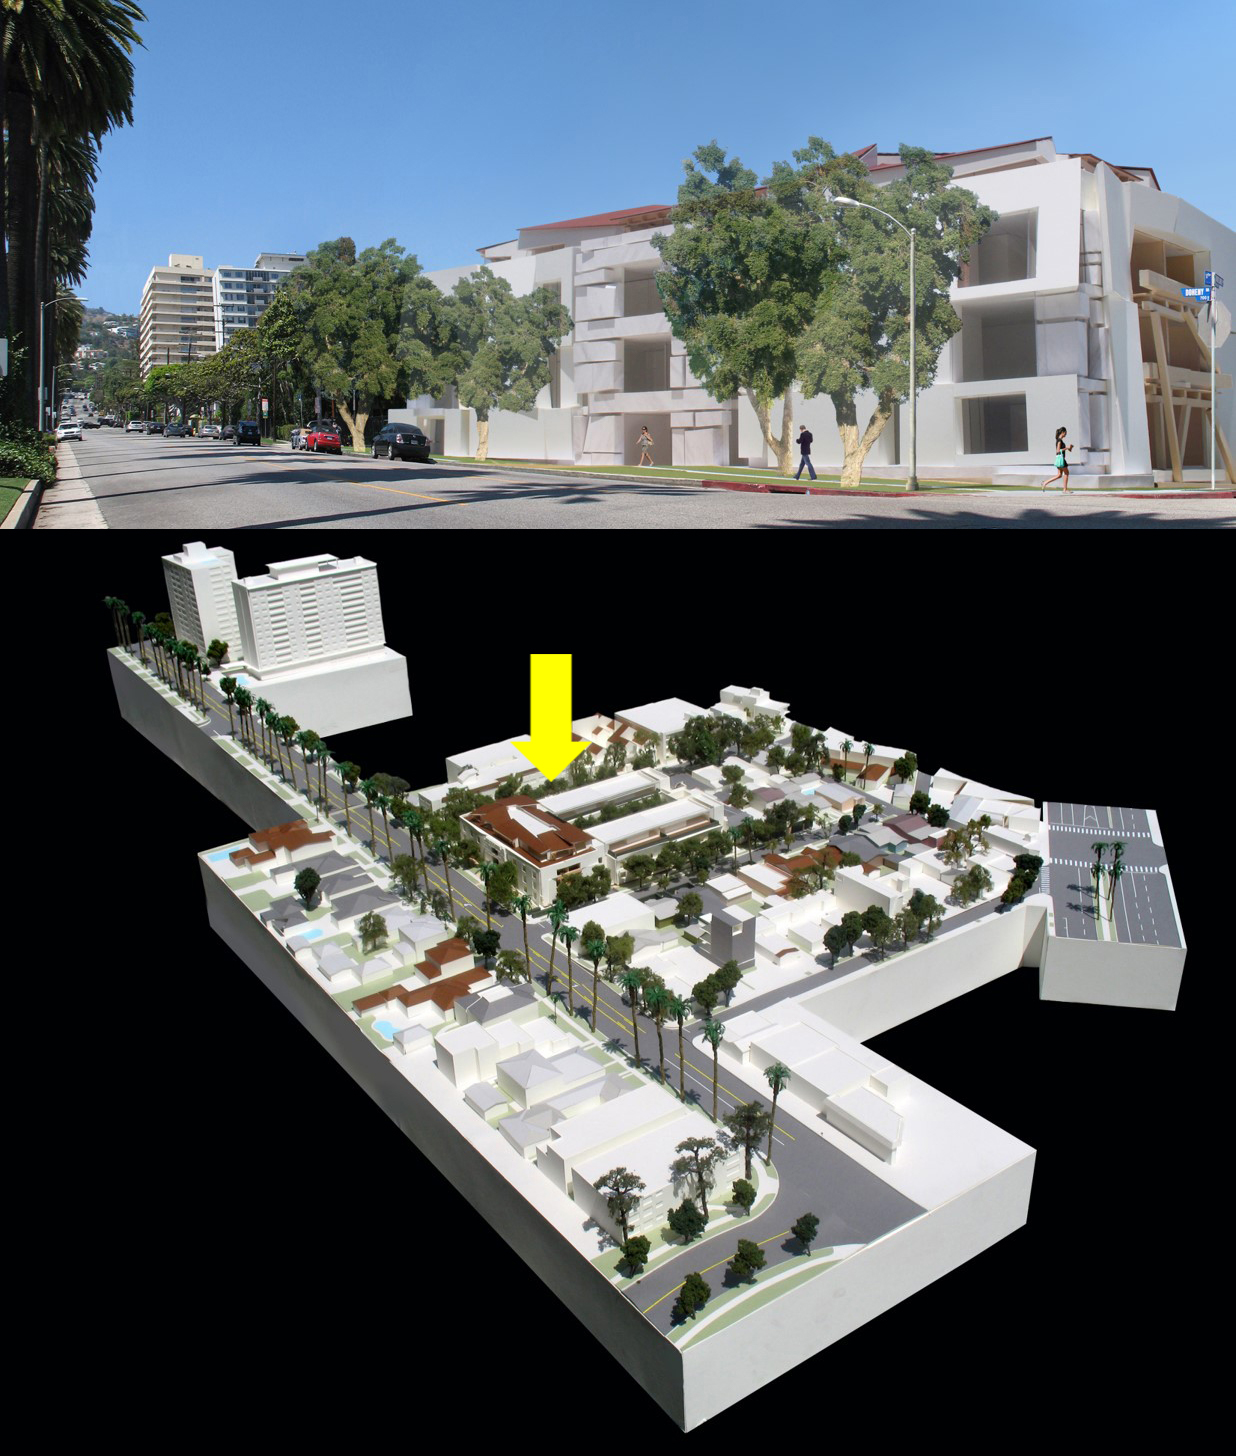 This four-story residential development proposed for a site in the heart of metropolitan Los Angeles offers an alternative to the single-family homes and towers that surround it.